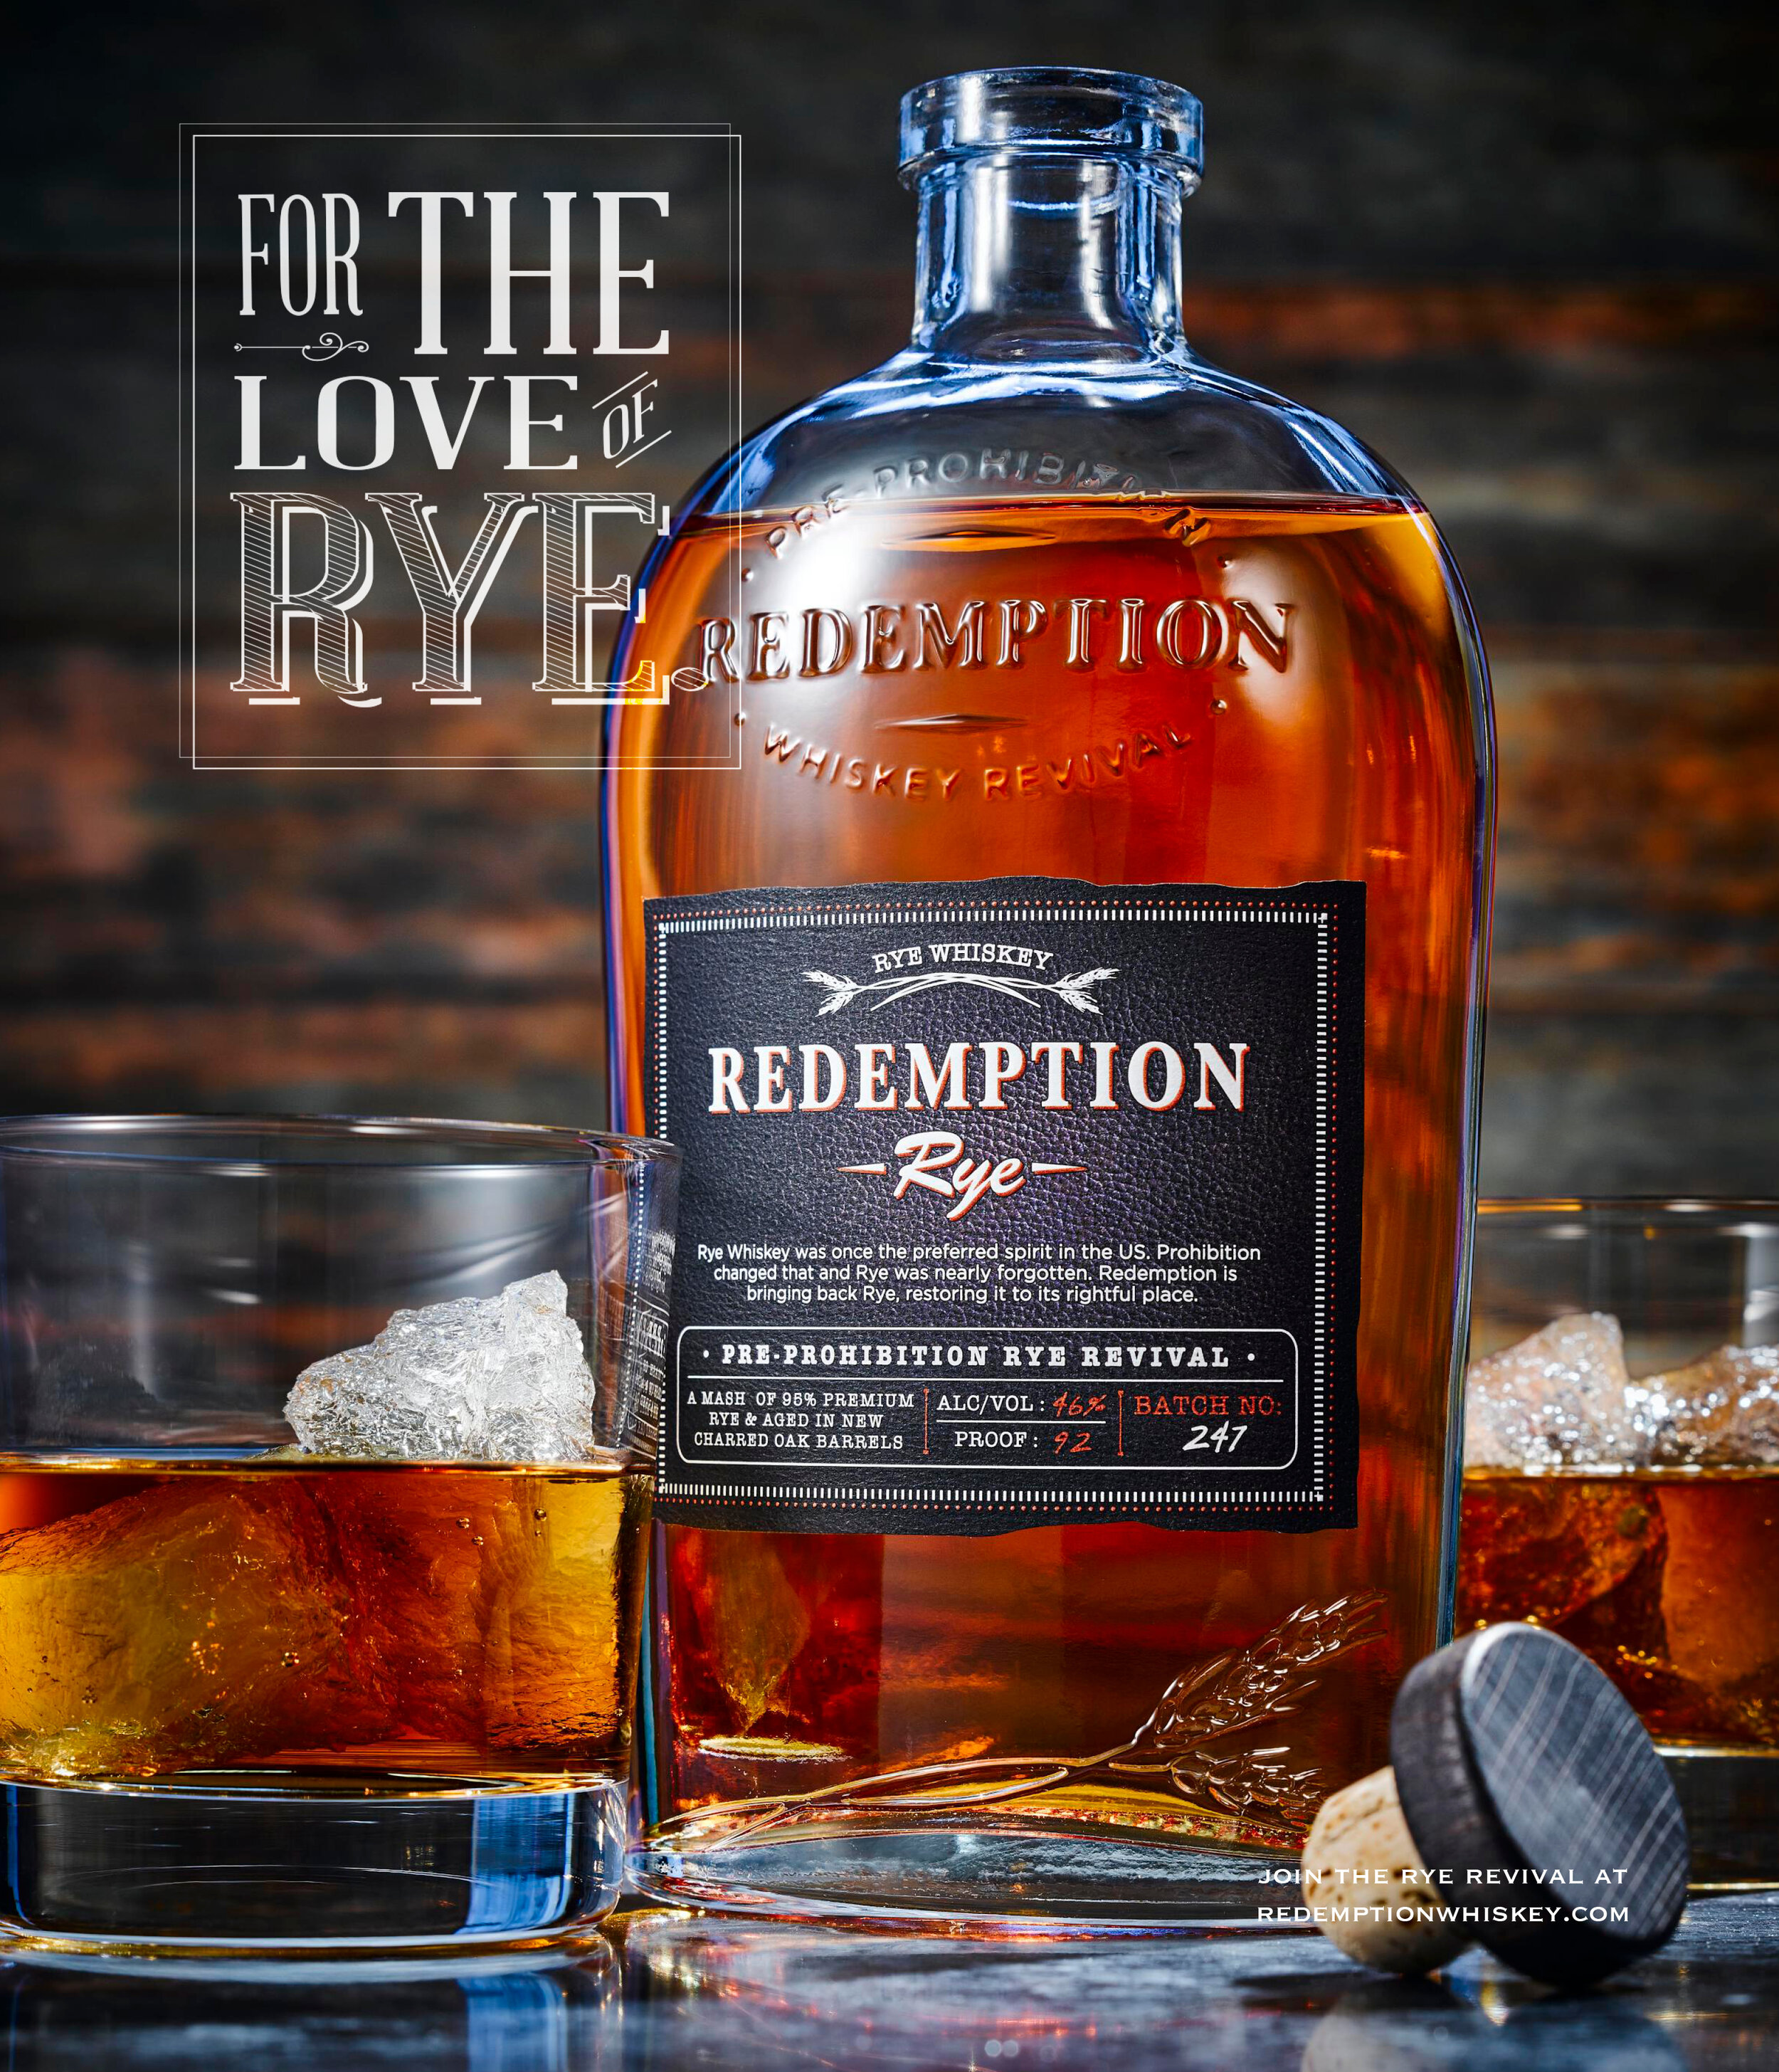 REDEMPTION_WHISKEY_ADVOCATE_FP_0927174.jpg